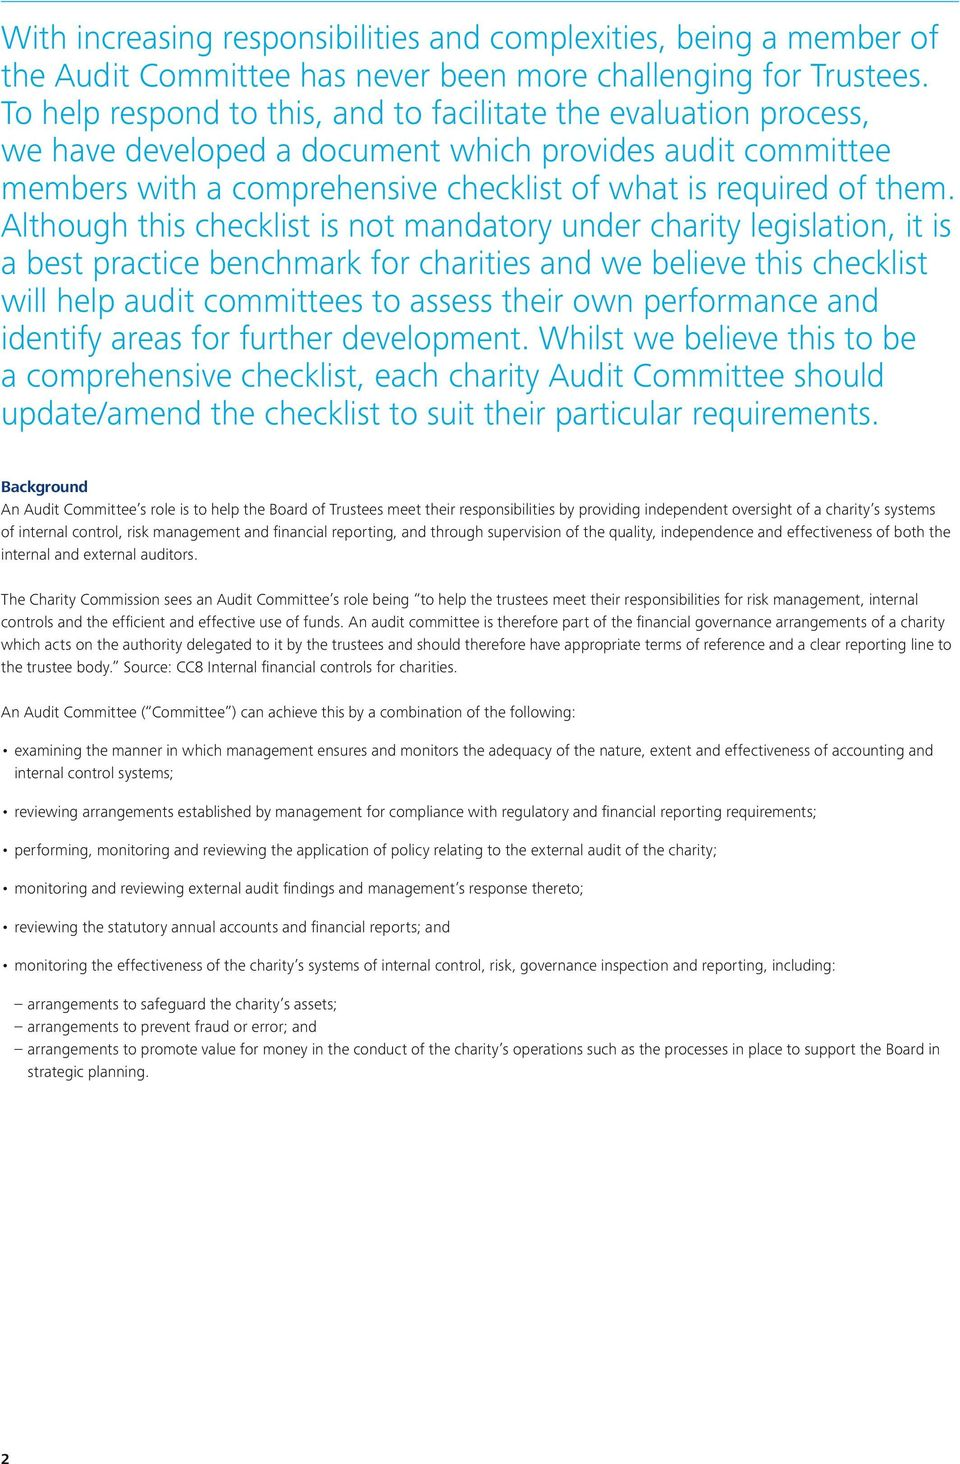 Although this checklist is not mandatory under charity legislation, it is a best practice benchmark for charities and we believe this checklist will help audit committees to assess their own